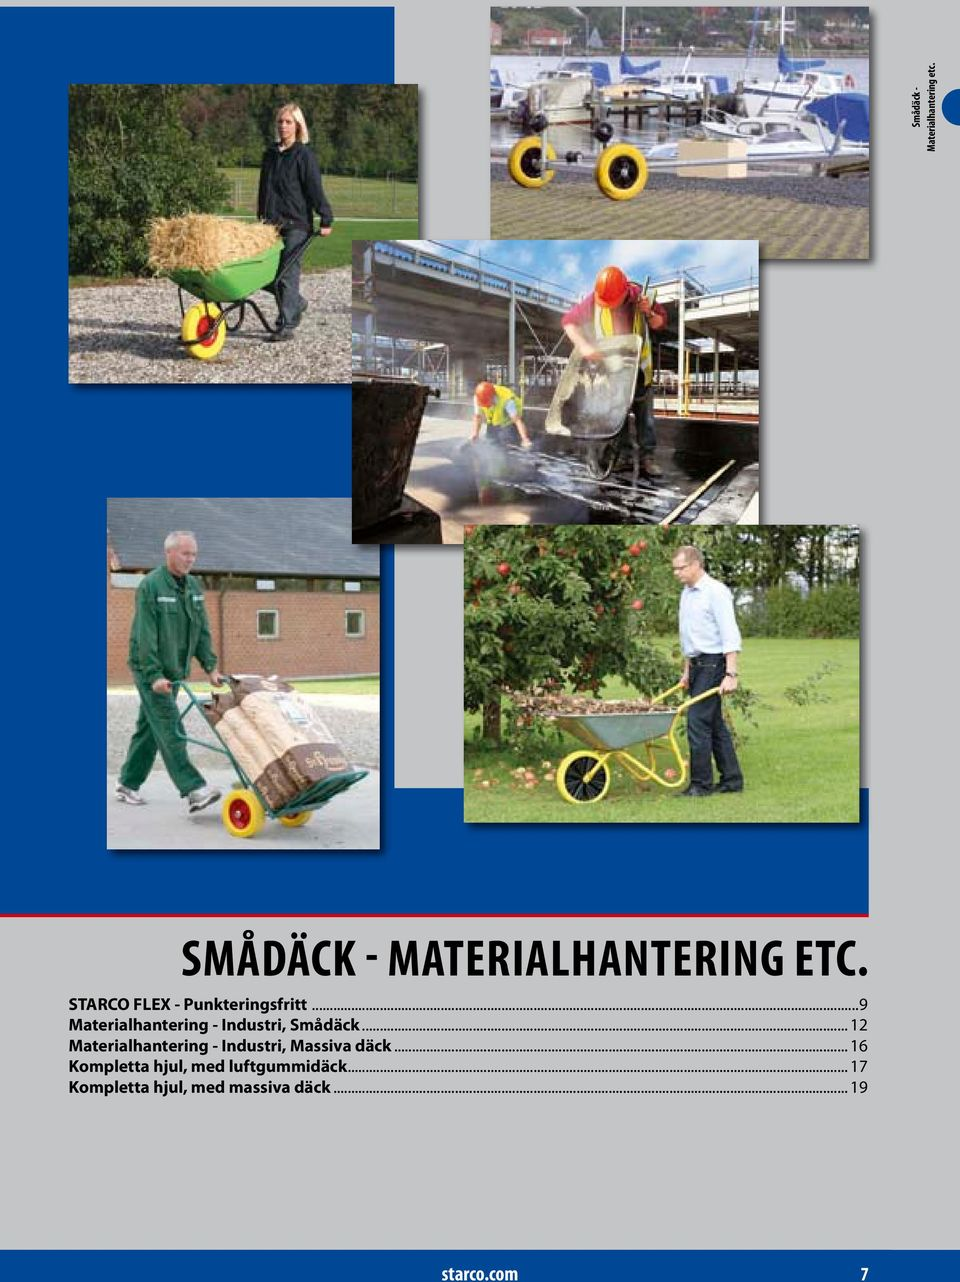 ..9 Materialhantering - Industri, Smådäck... 12 Materialhantering - Industri, Massiva däck.